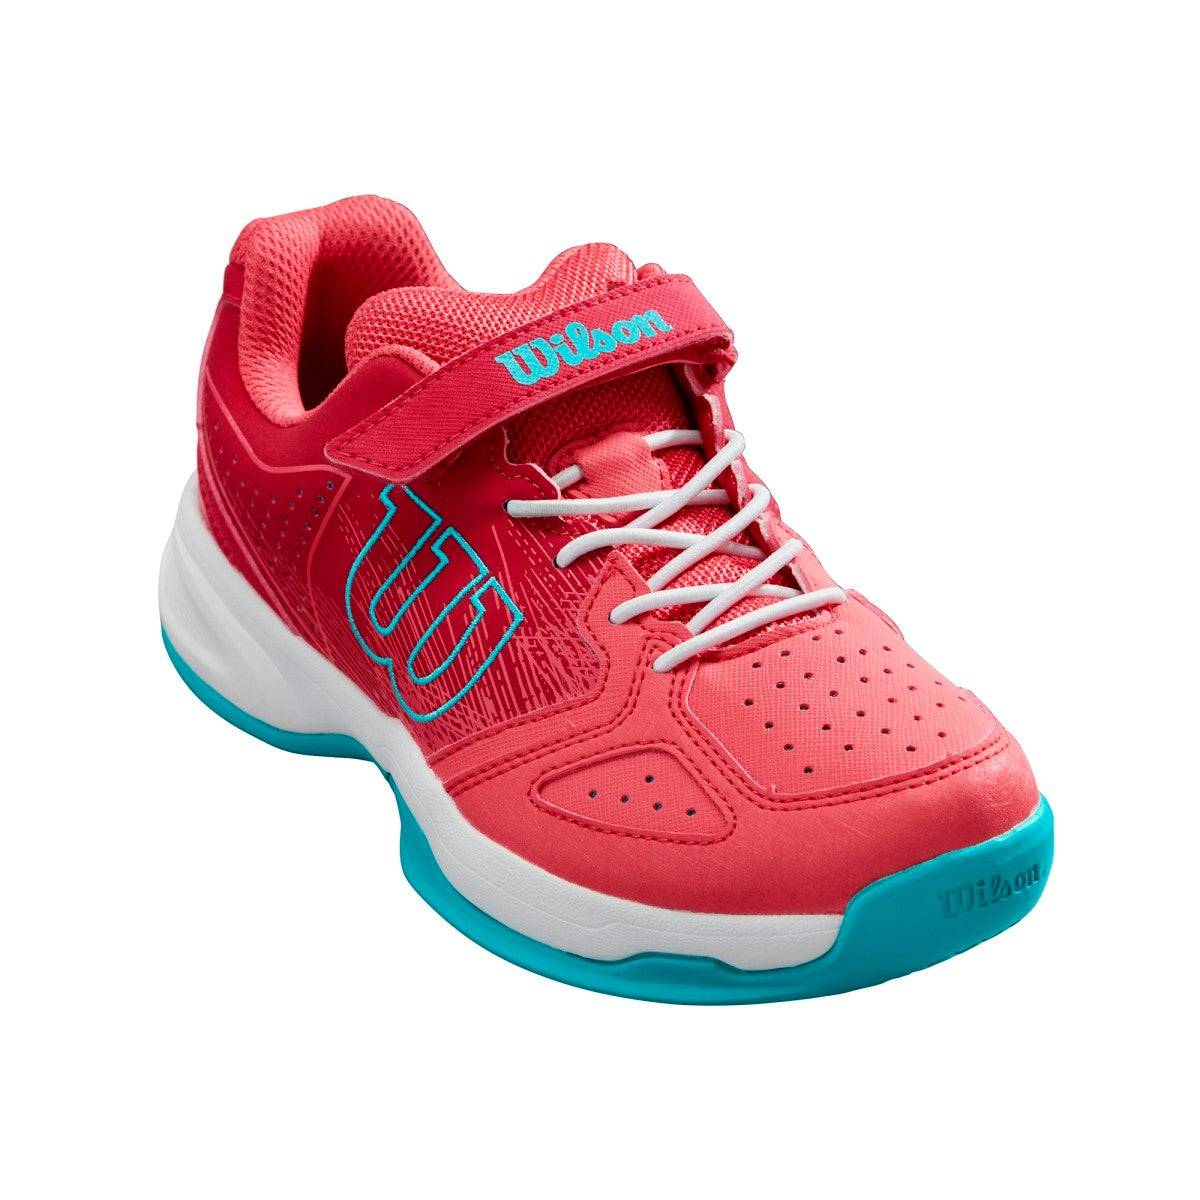 Wilson Junior Kaos K Tennis Shoes in Paradise Pink / White / Peacock Blue - Size: 12 Y  - Unisex - Paradise Pink/White/Peacock Blue - Size: 12 Y